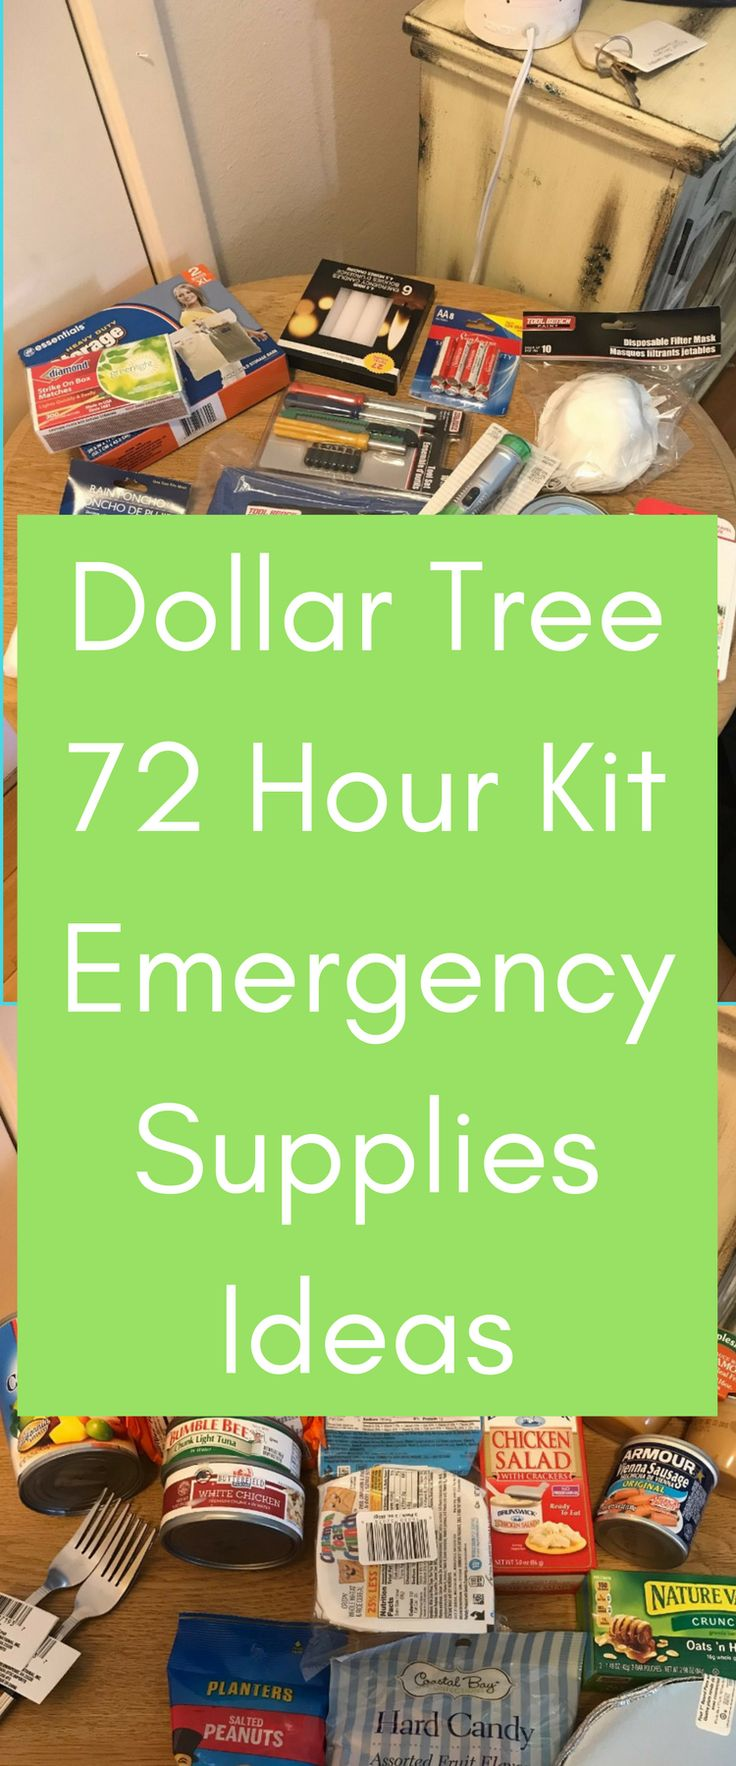 Dollar Tree 72 Hour Kit / Dollar Tree Ideas / Dollar Tree Emergency Supplies / Emergency Prep / 72 Hour kit via @clarkscondensed